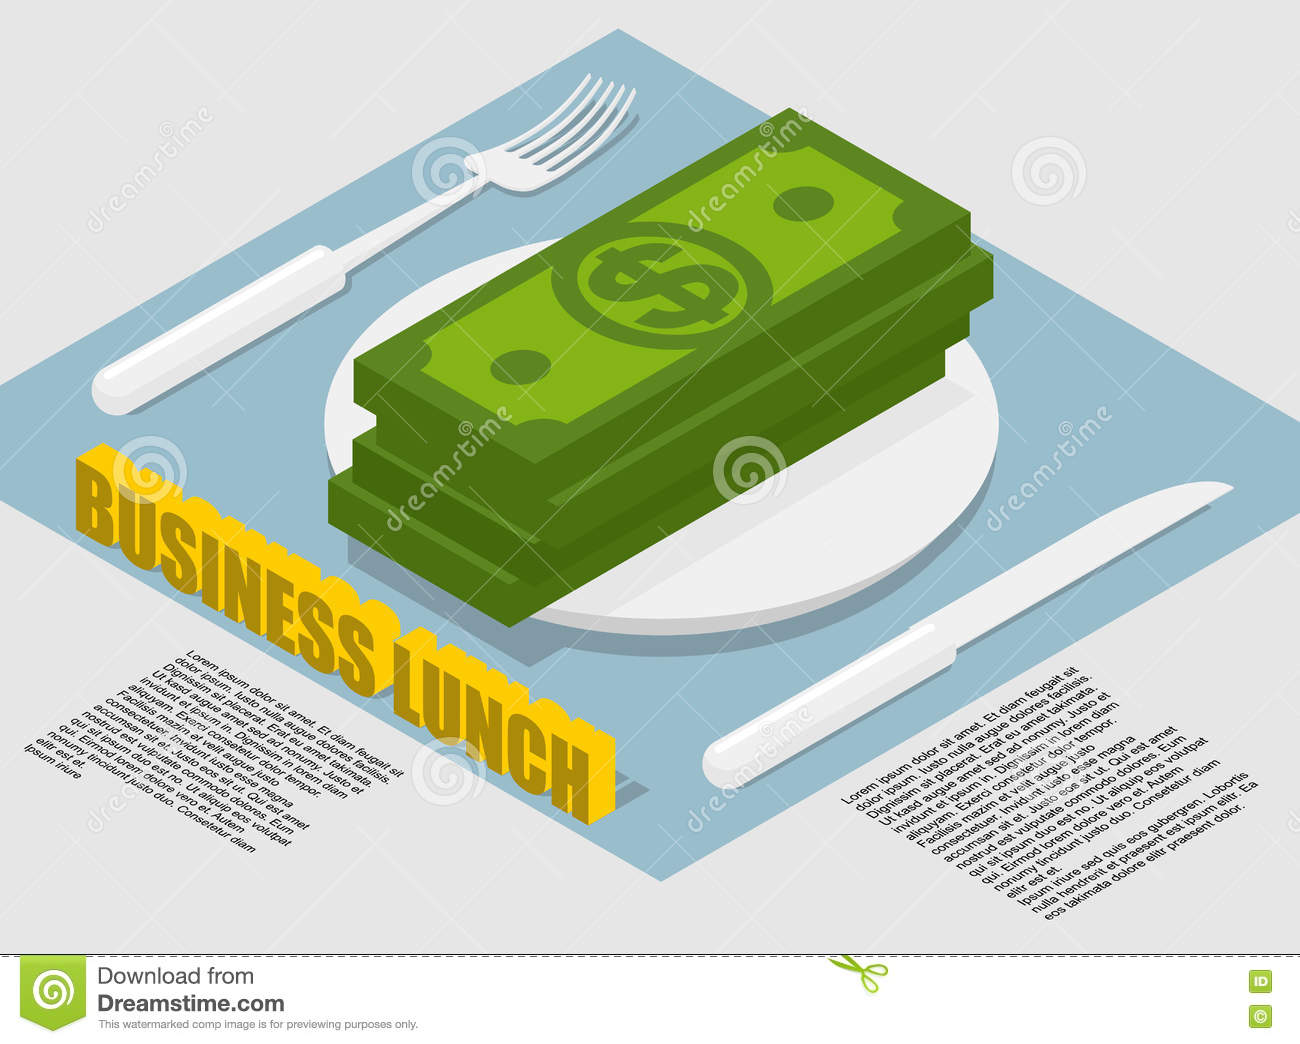 Business Lunch Infographics On Food Costs  Spending On Food